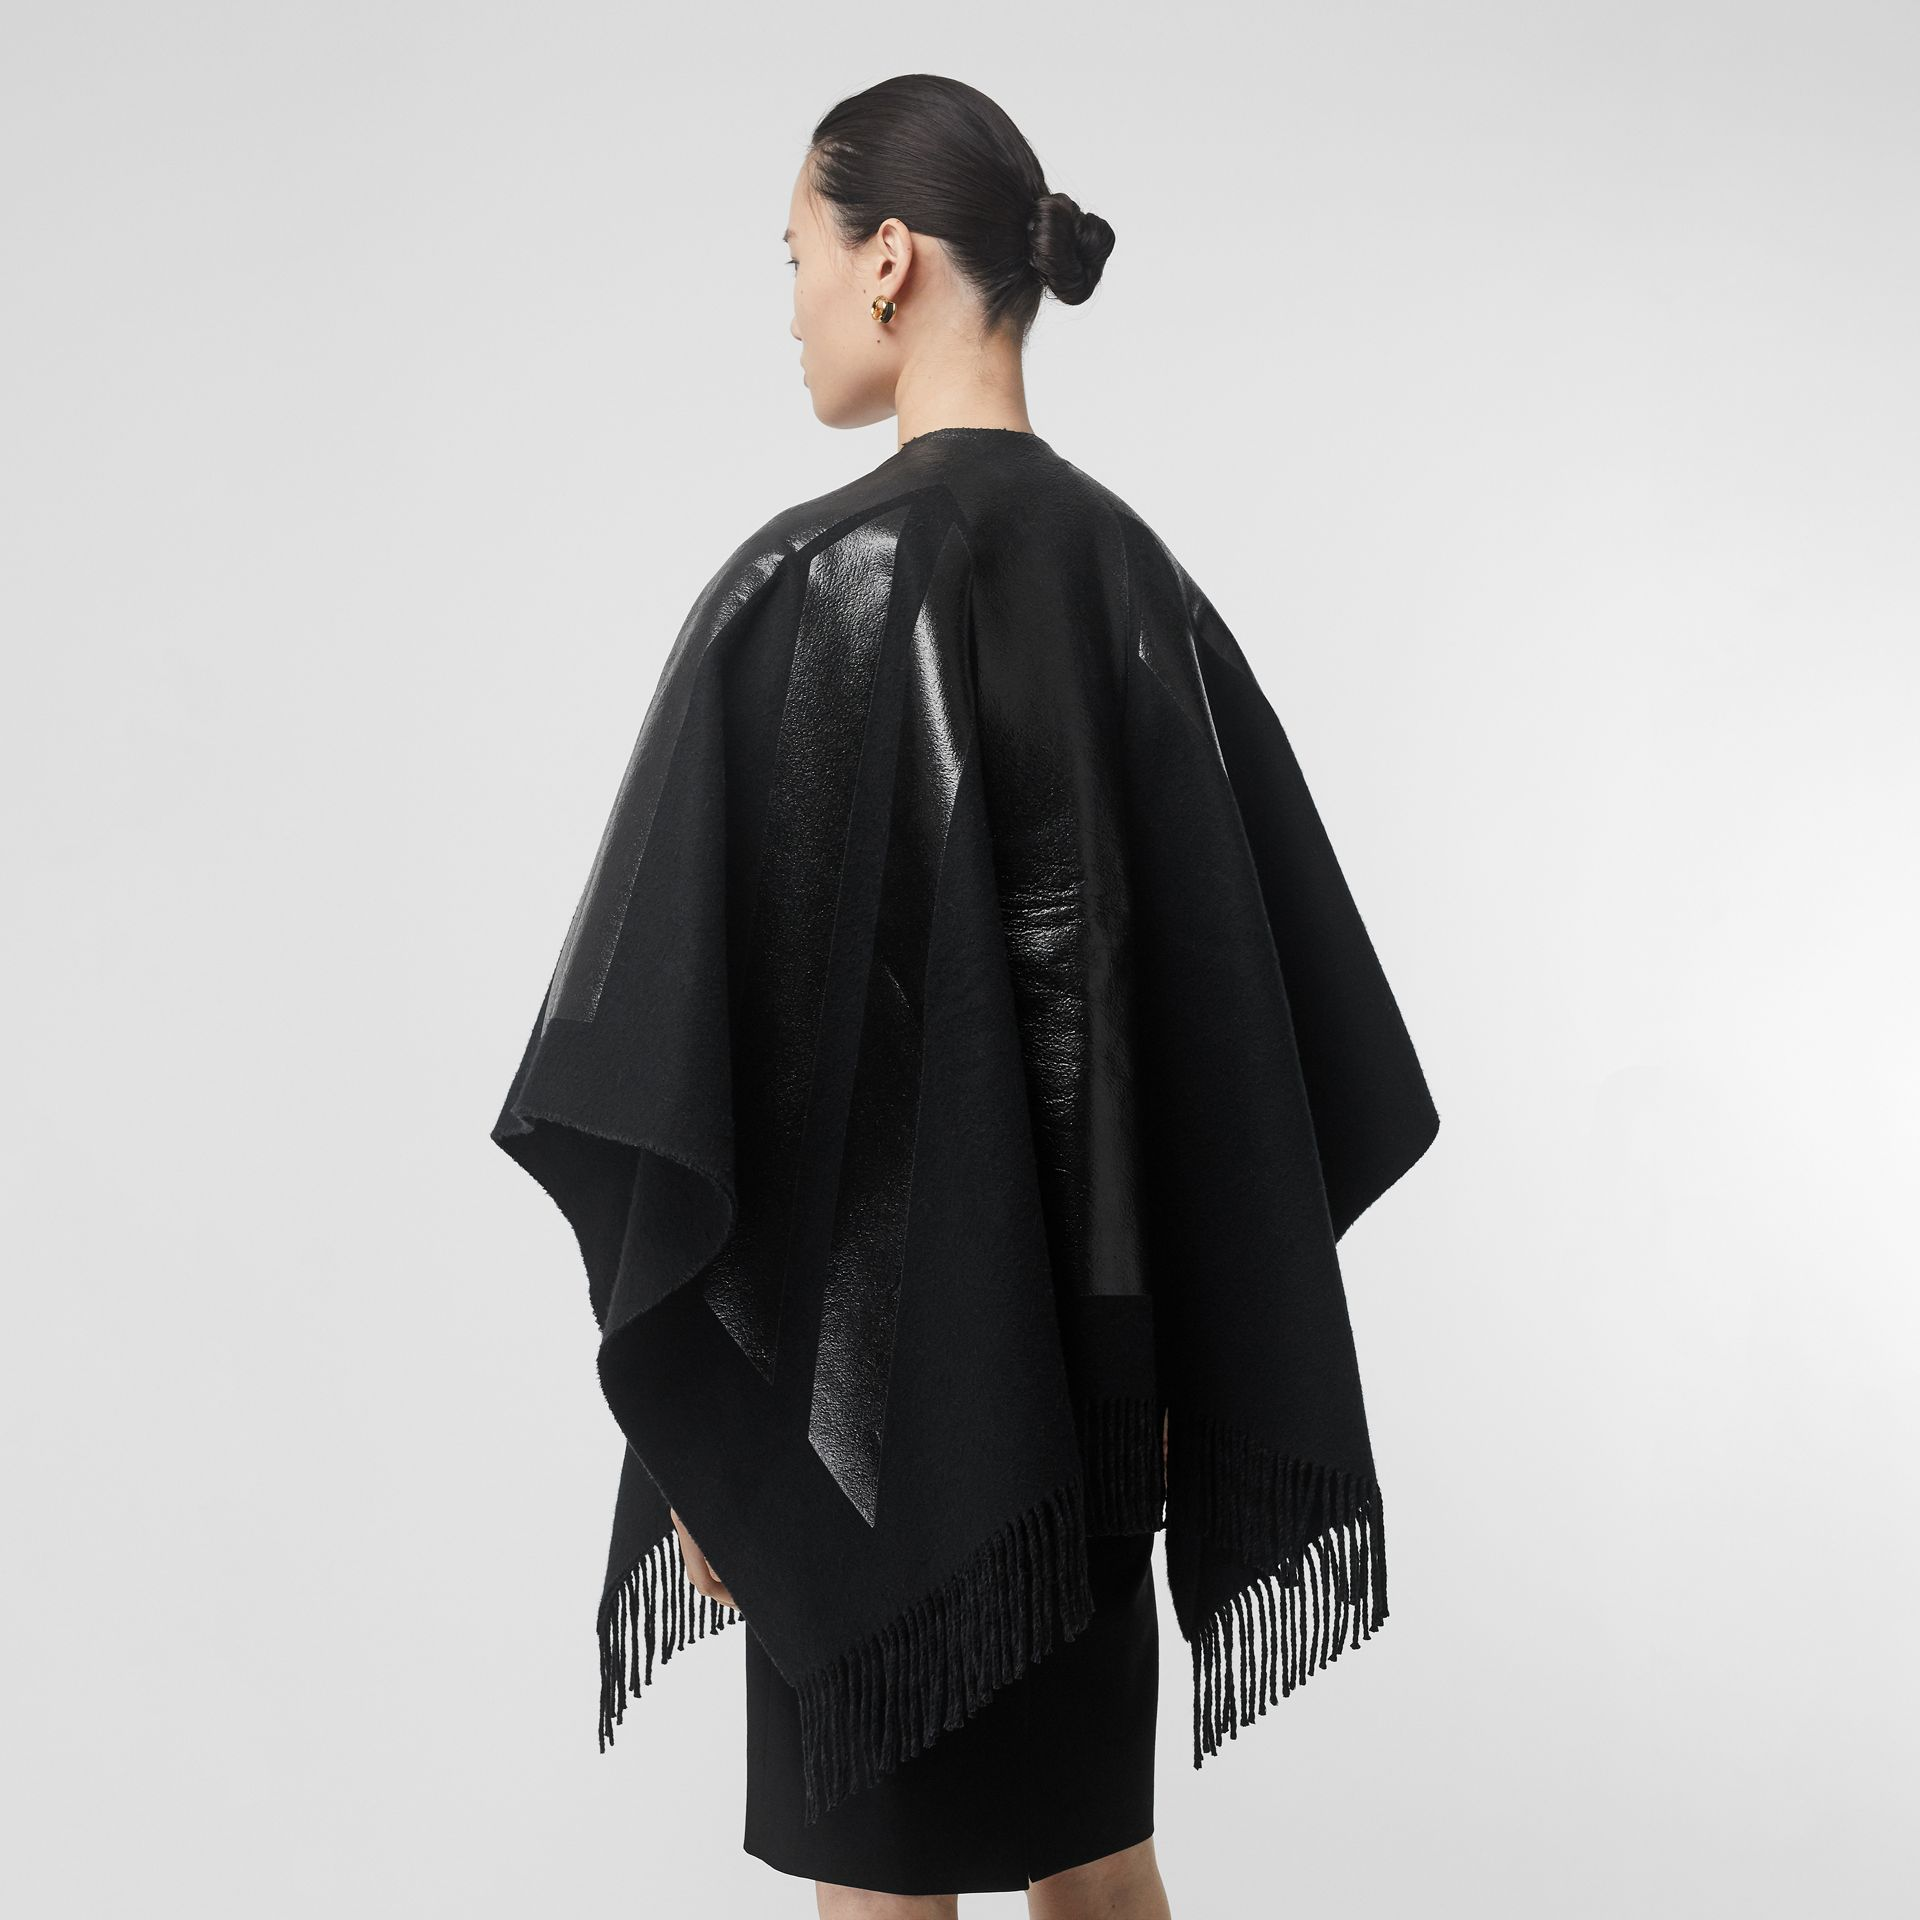 Union Jack Print Wool Cashmere Cape in Black - Women | Burberry - gallery image 2